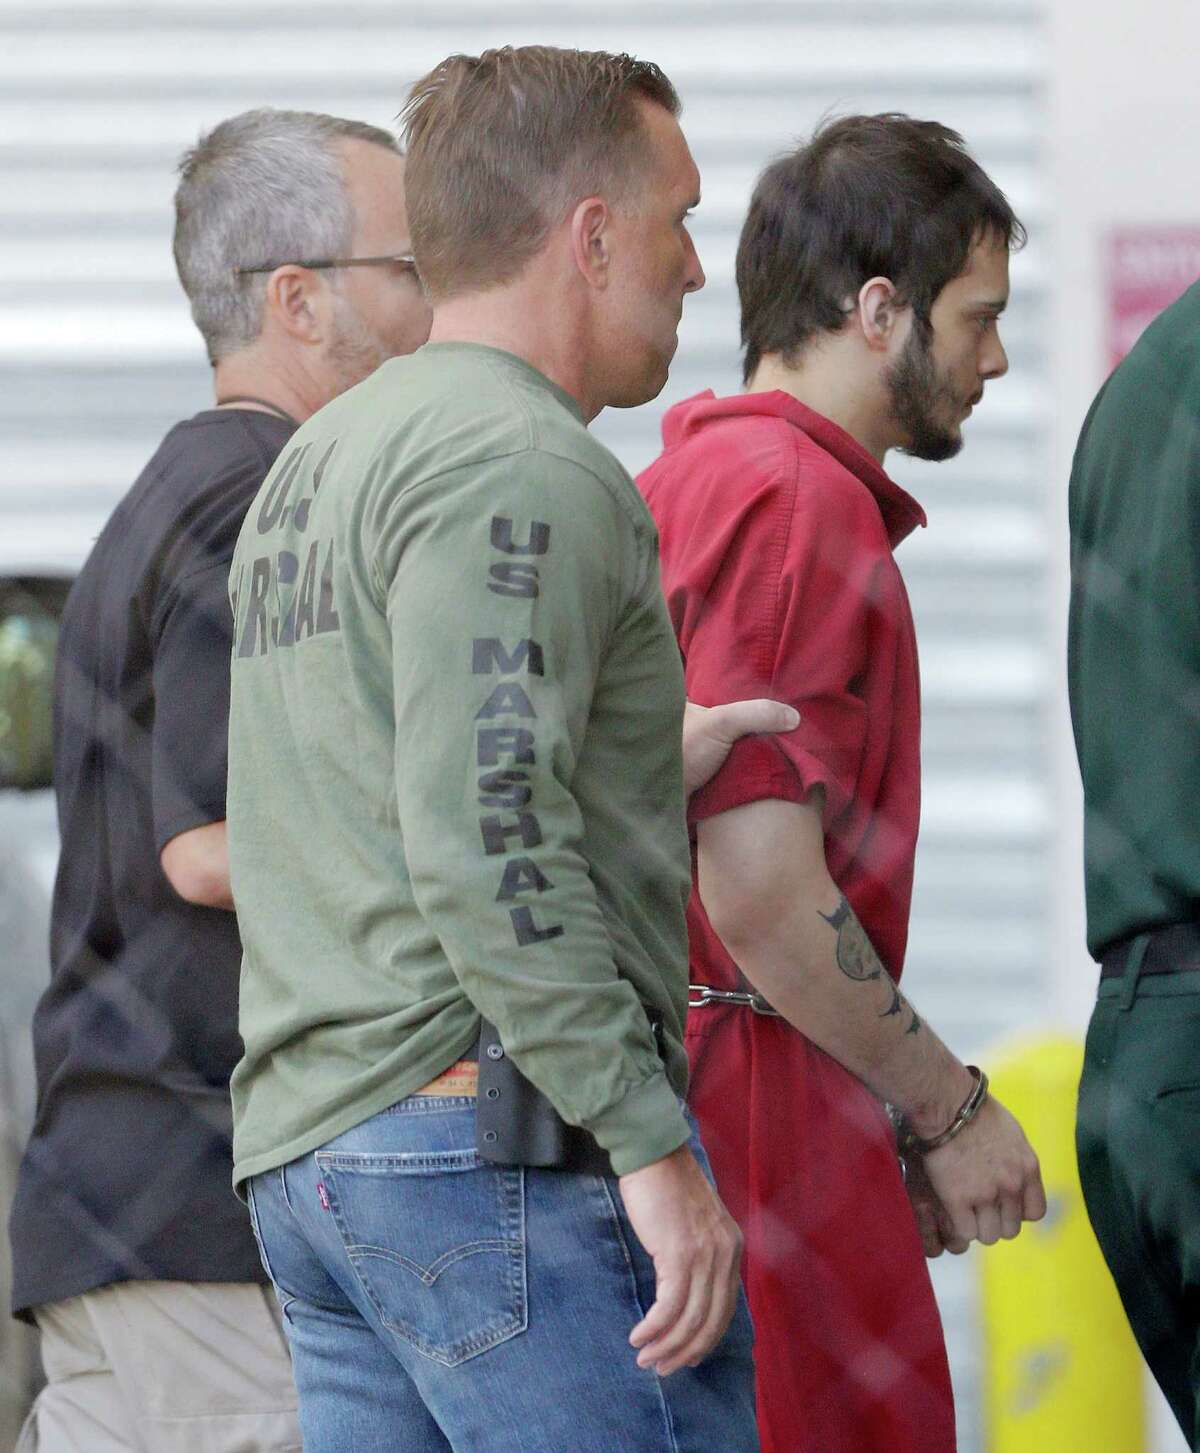 FILE- In this Jan. 9, 2017 file photo, Esteban Santiago, right, accused of fatally shooting several people and wounding multiple others at a crowded Florida airport baggage claim, is returned to Broward County's main jail after his first court appearance in Fort Lauderdale, Fla. Authorities say such walk-ins are a daily occurrence around the country. Assessing whether the people are reporting a credible threat or whether they need medical help is extremely difficult and drains already-stretched law enforcement resources. (AP Photo/Alan Diaz, File)